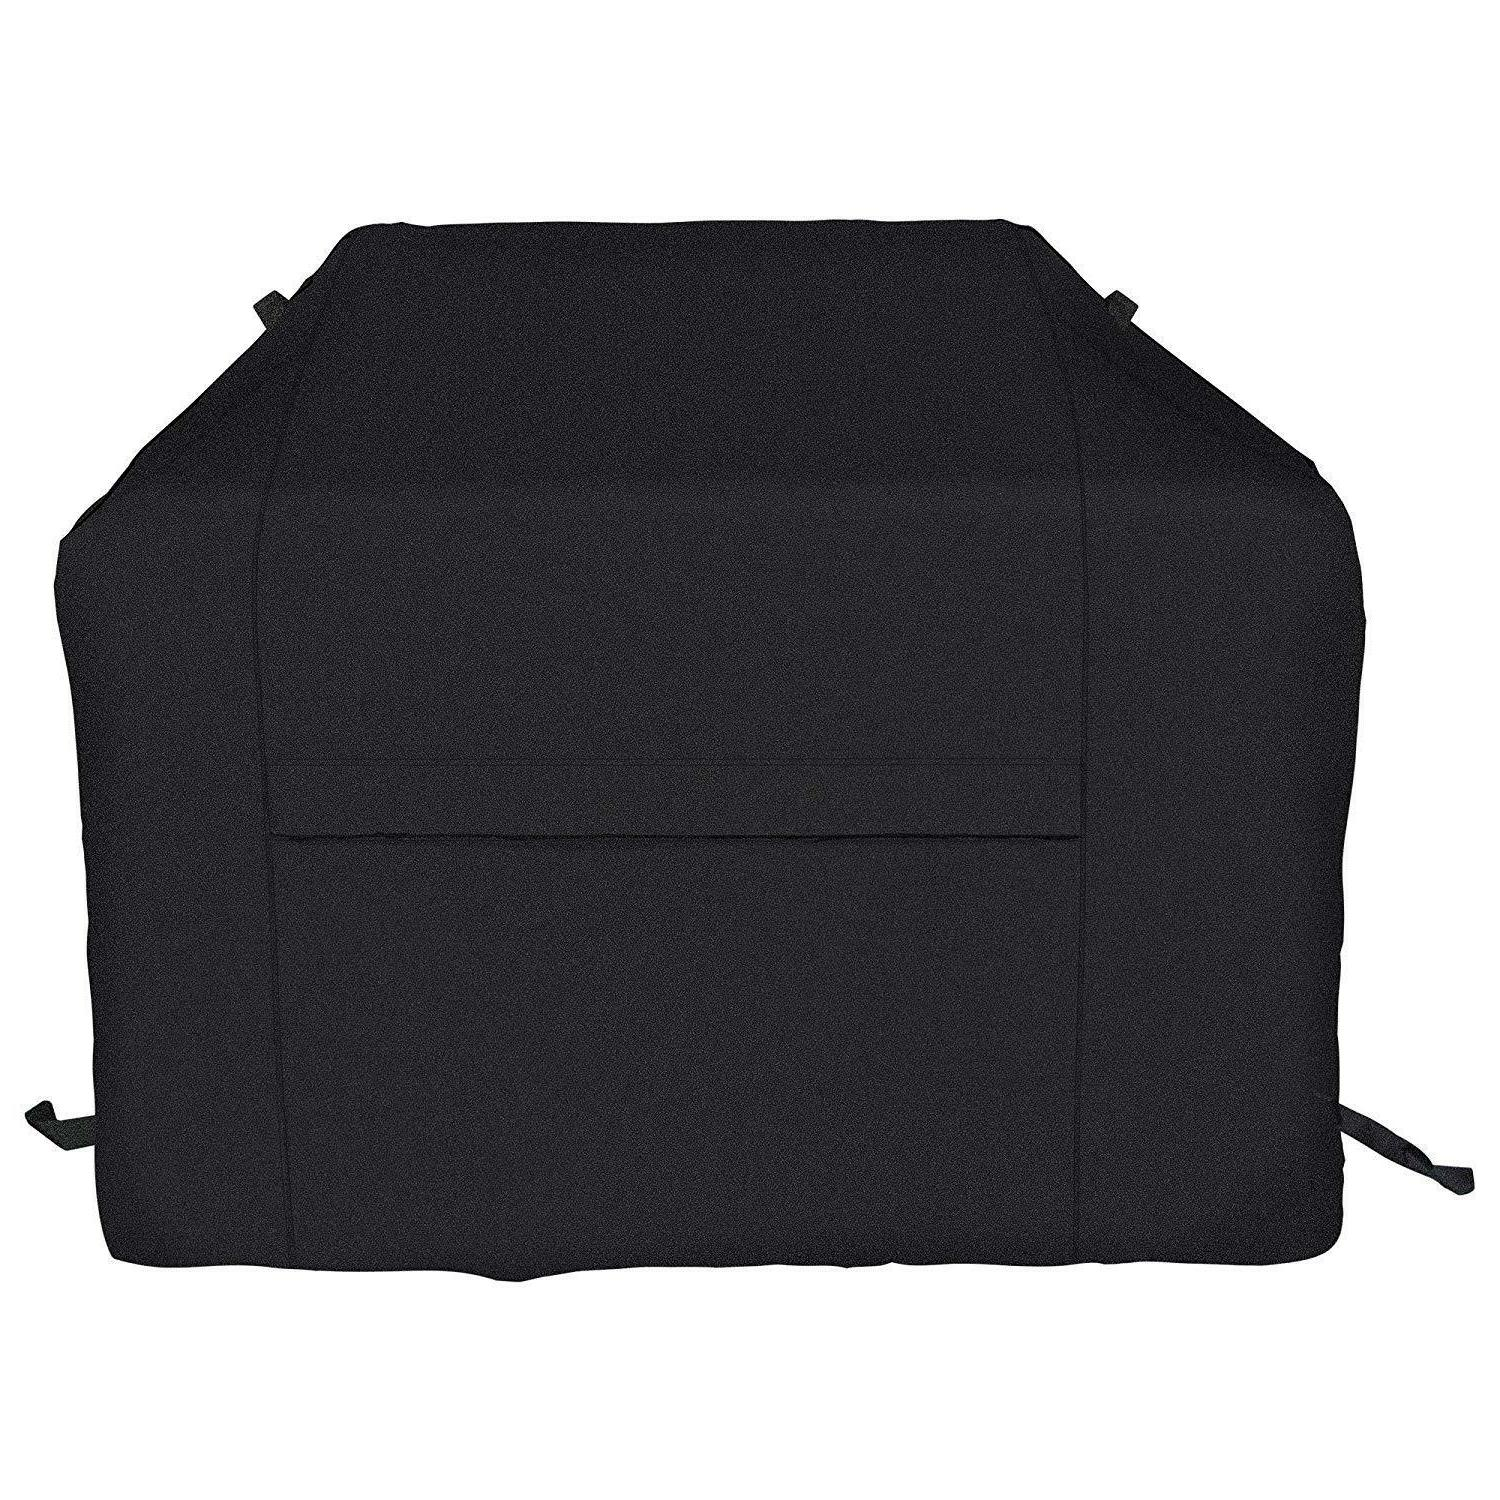 60 inch grill cover u v protection